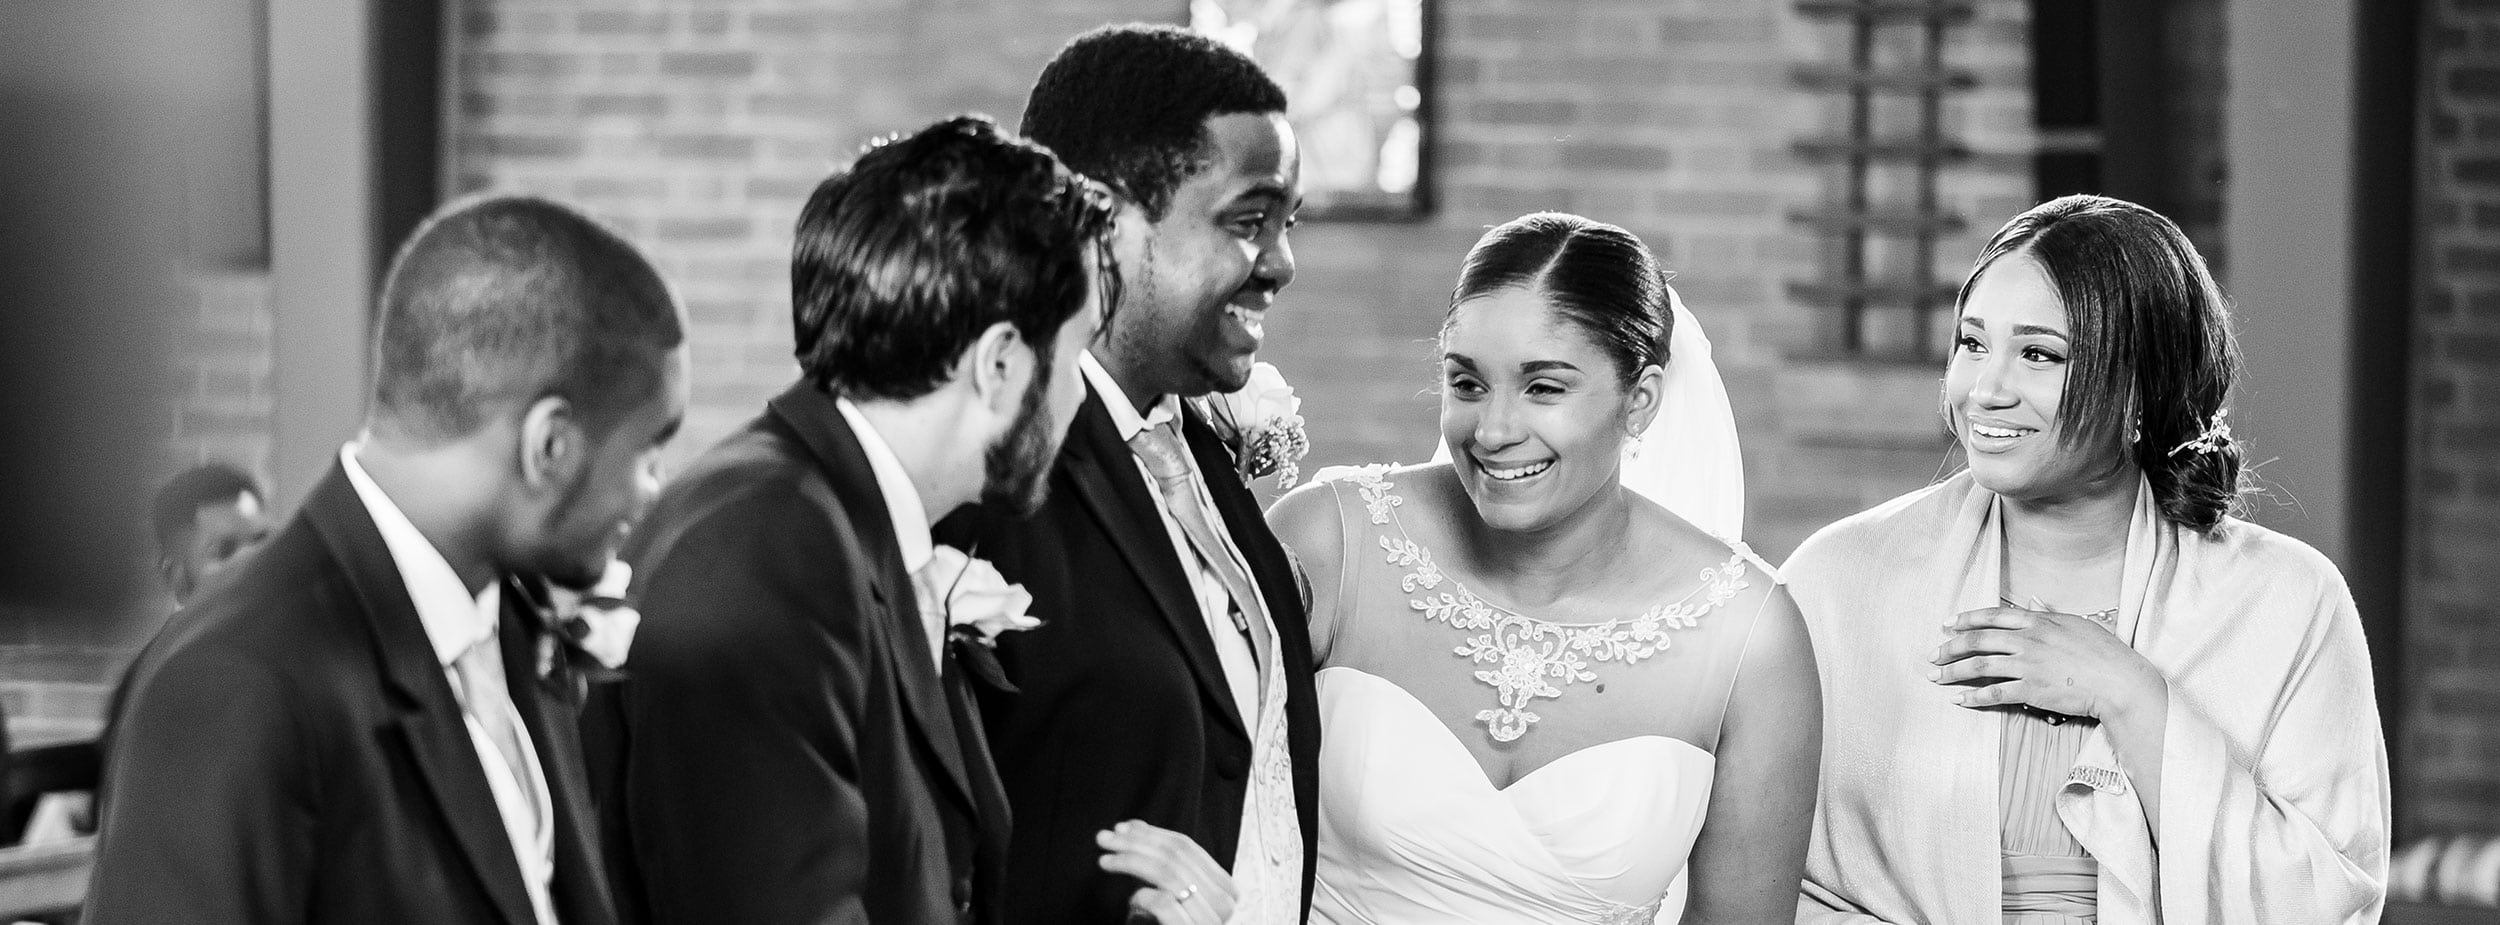 Wedding Photographer Bromley Kent